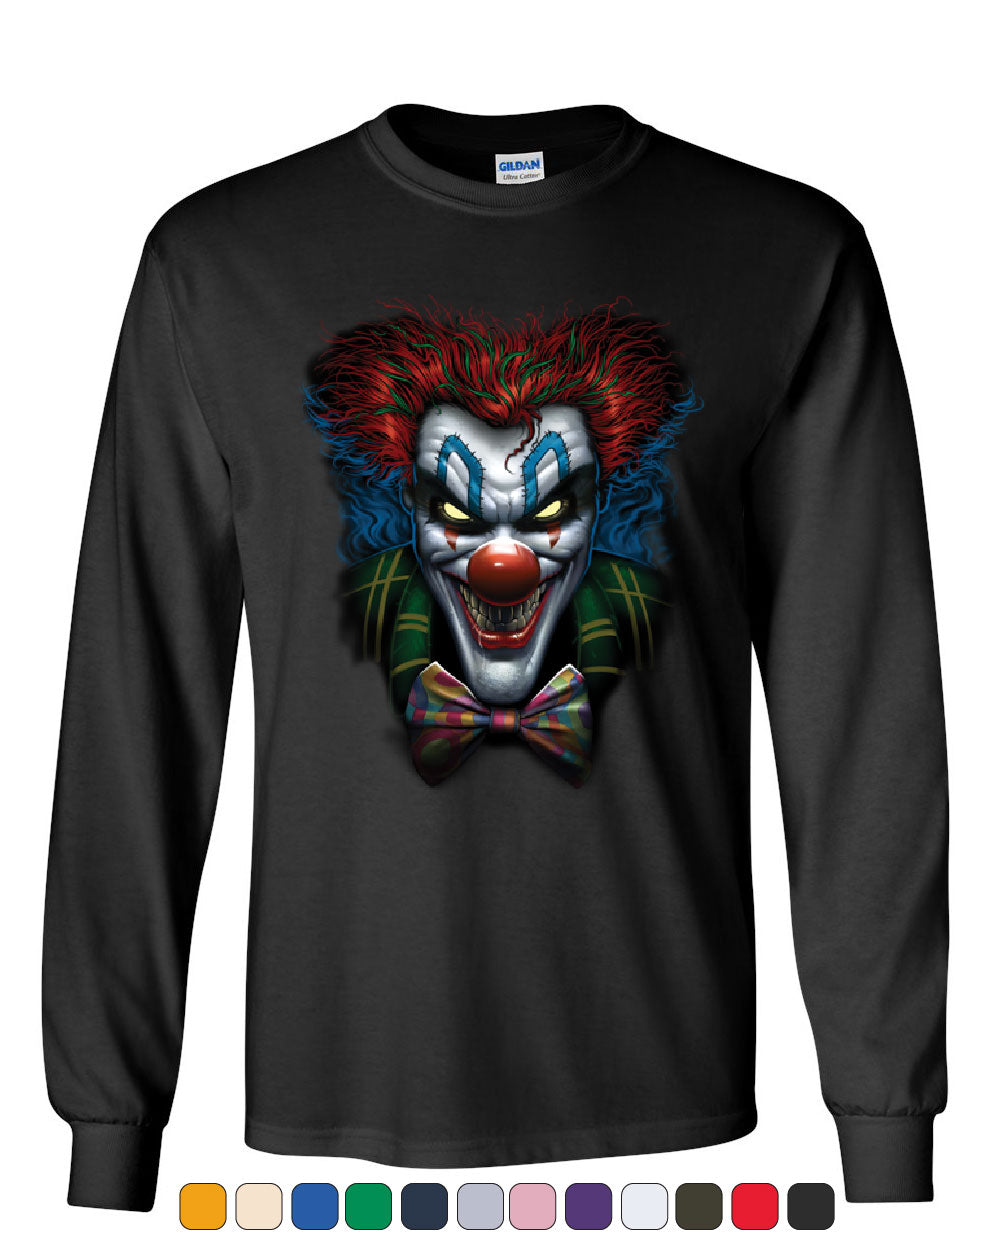 17e834ba Psycho Clown Long Sleeve T-Shirt Nightmare Evil Creepy Scary Horror Fobia  Tee